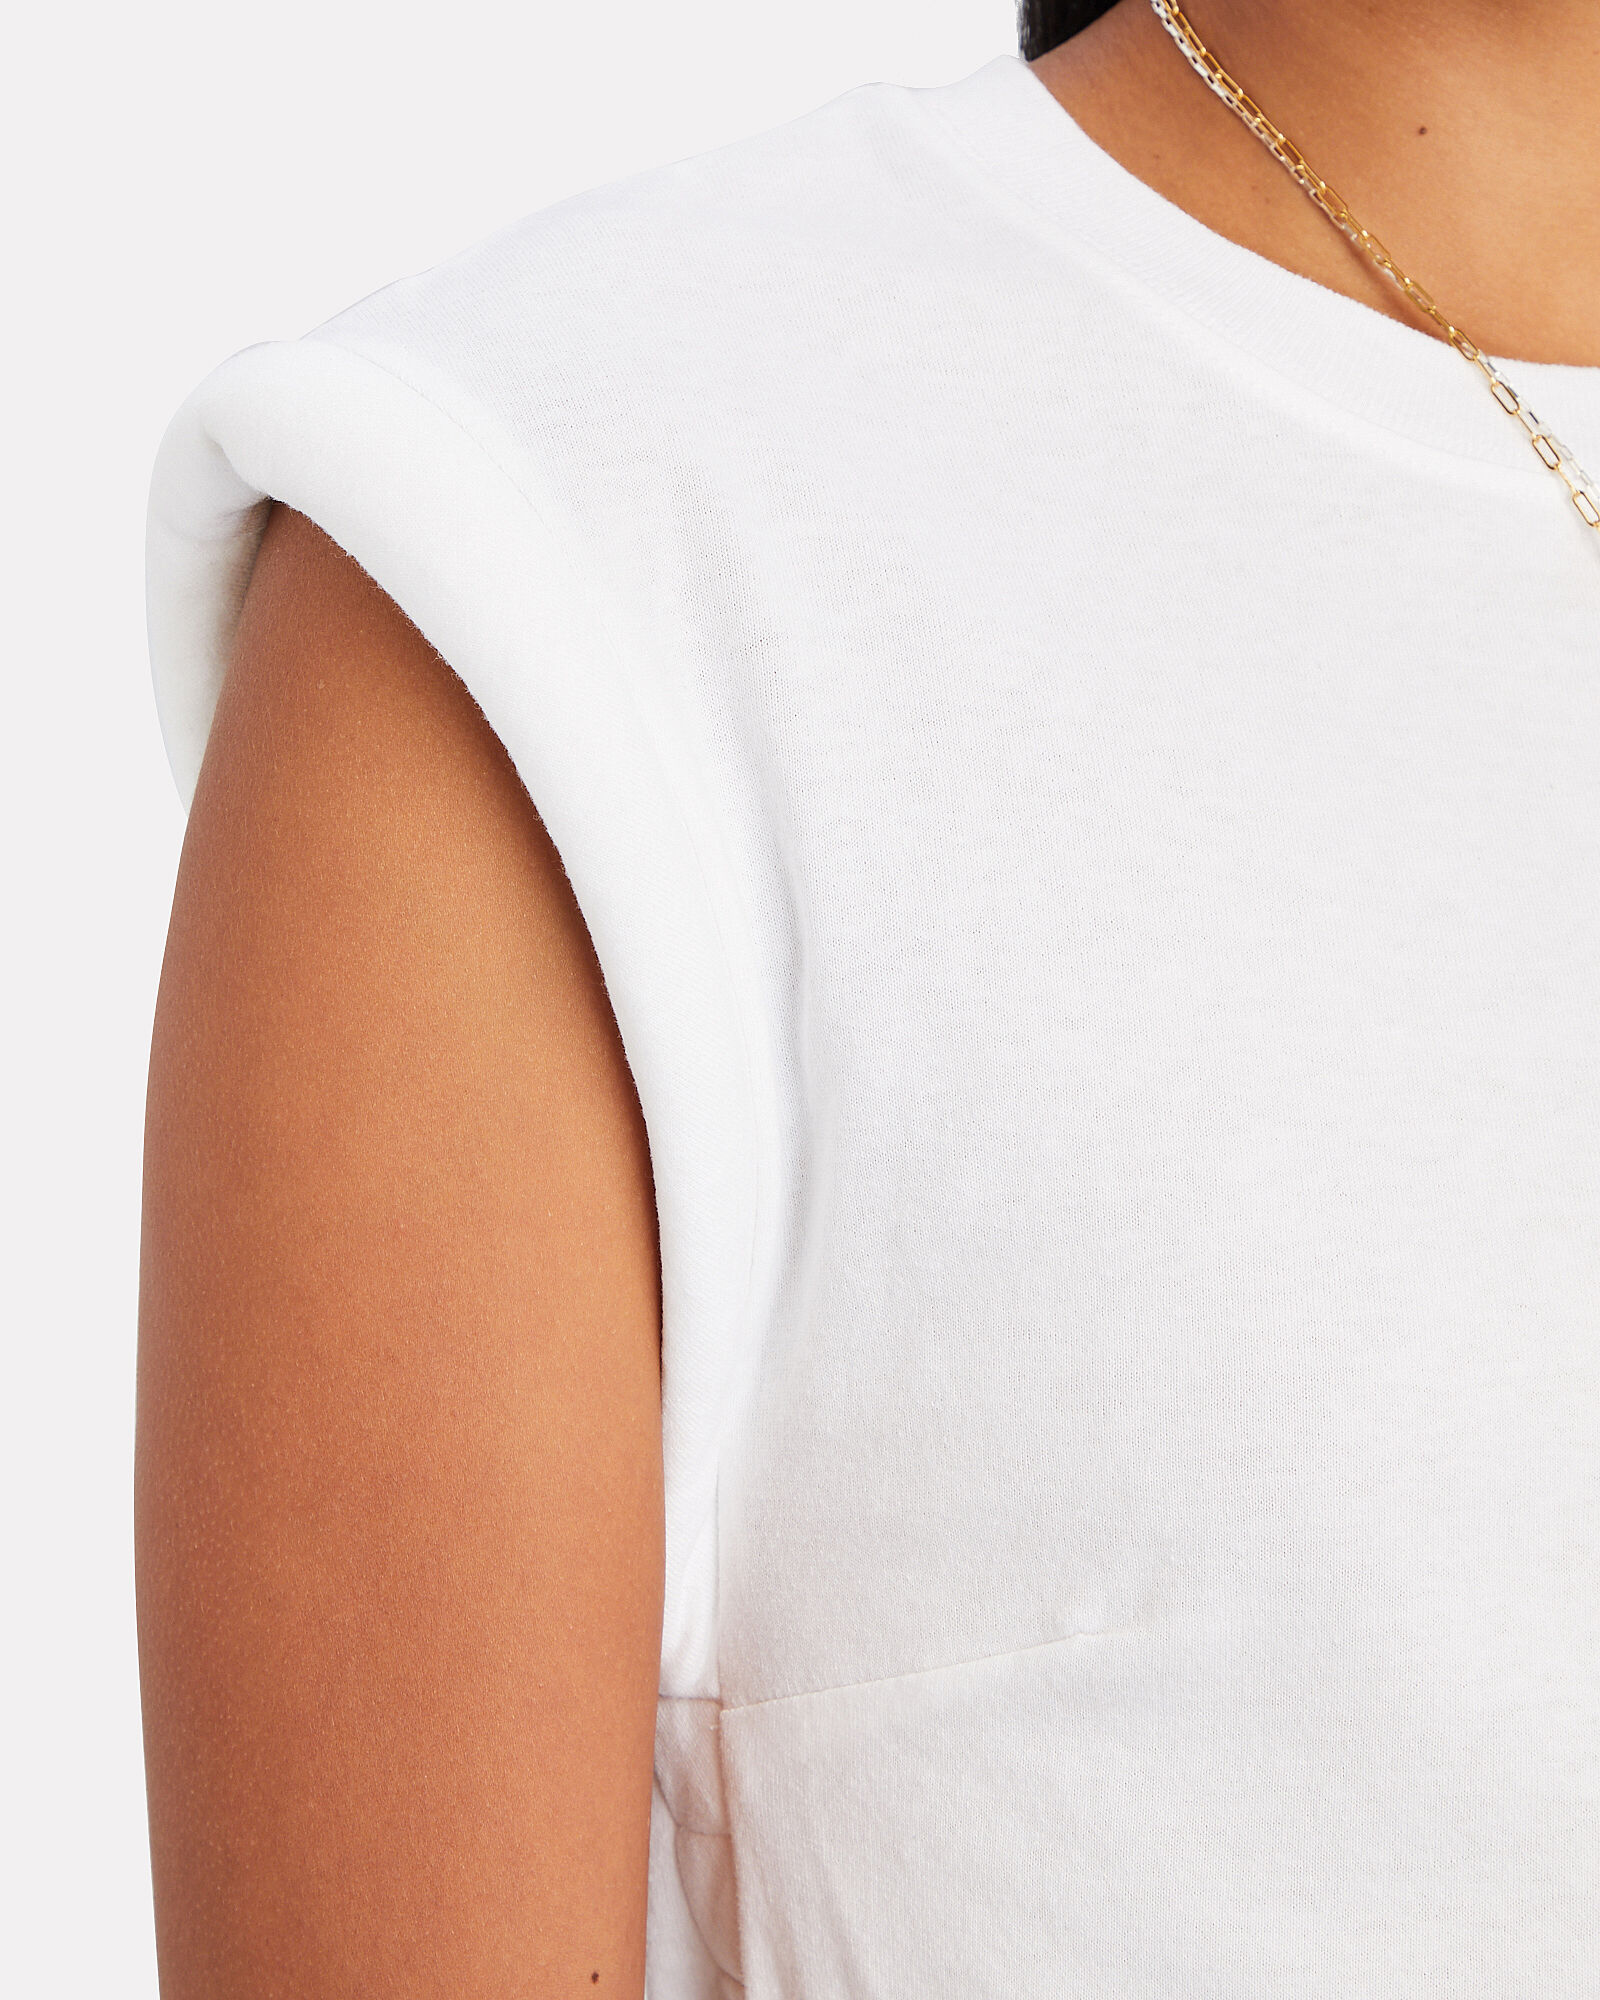 Kairi Padded Shoulder T-Shirt, , hi-res